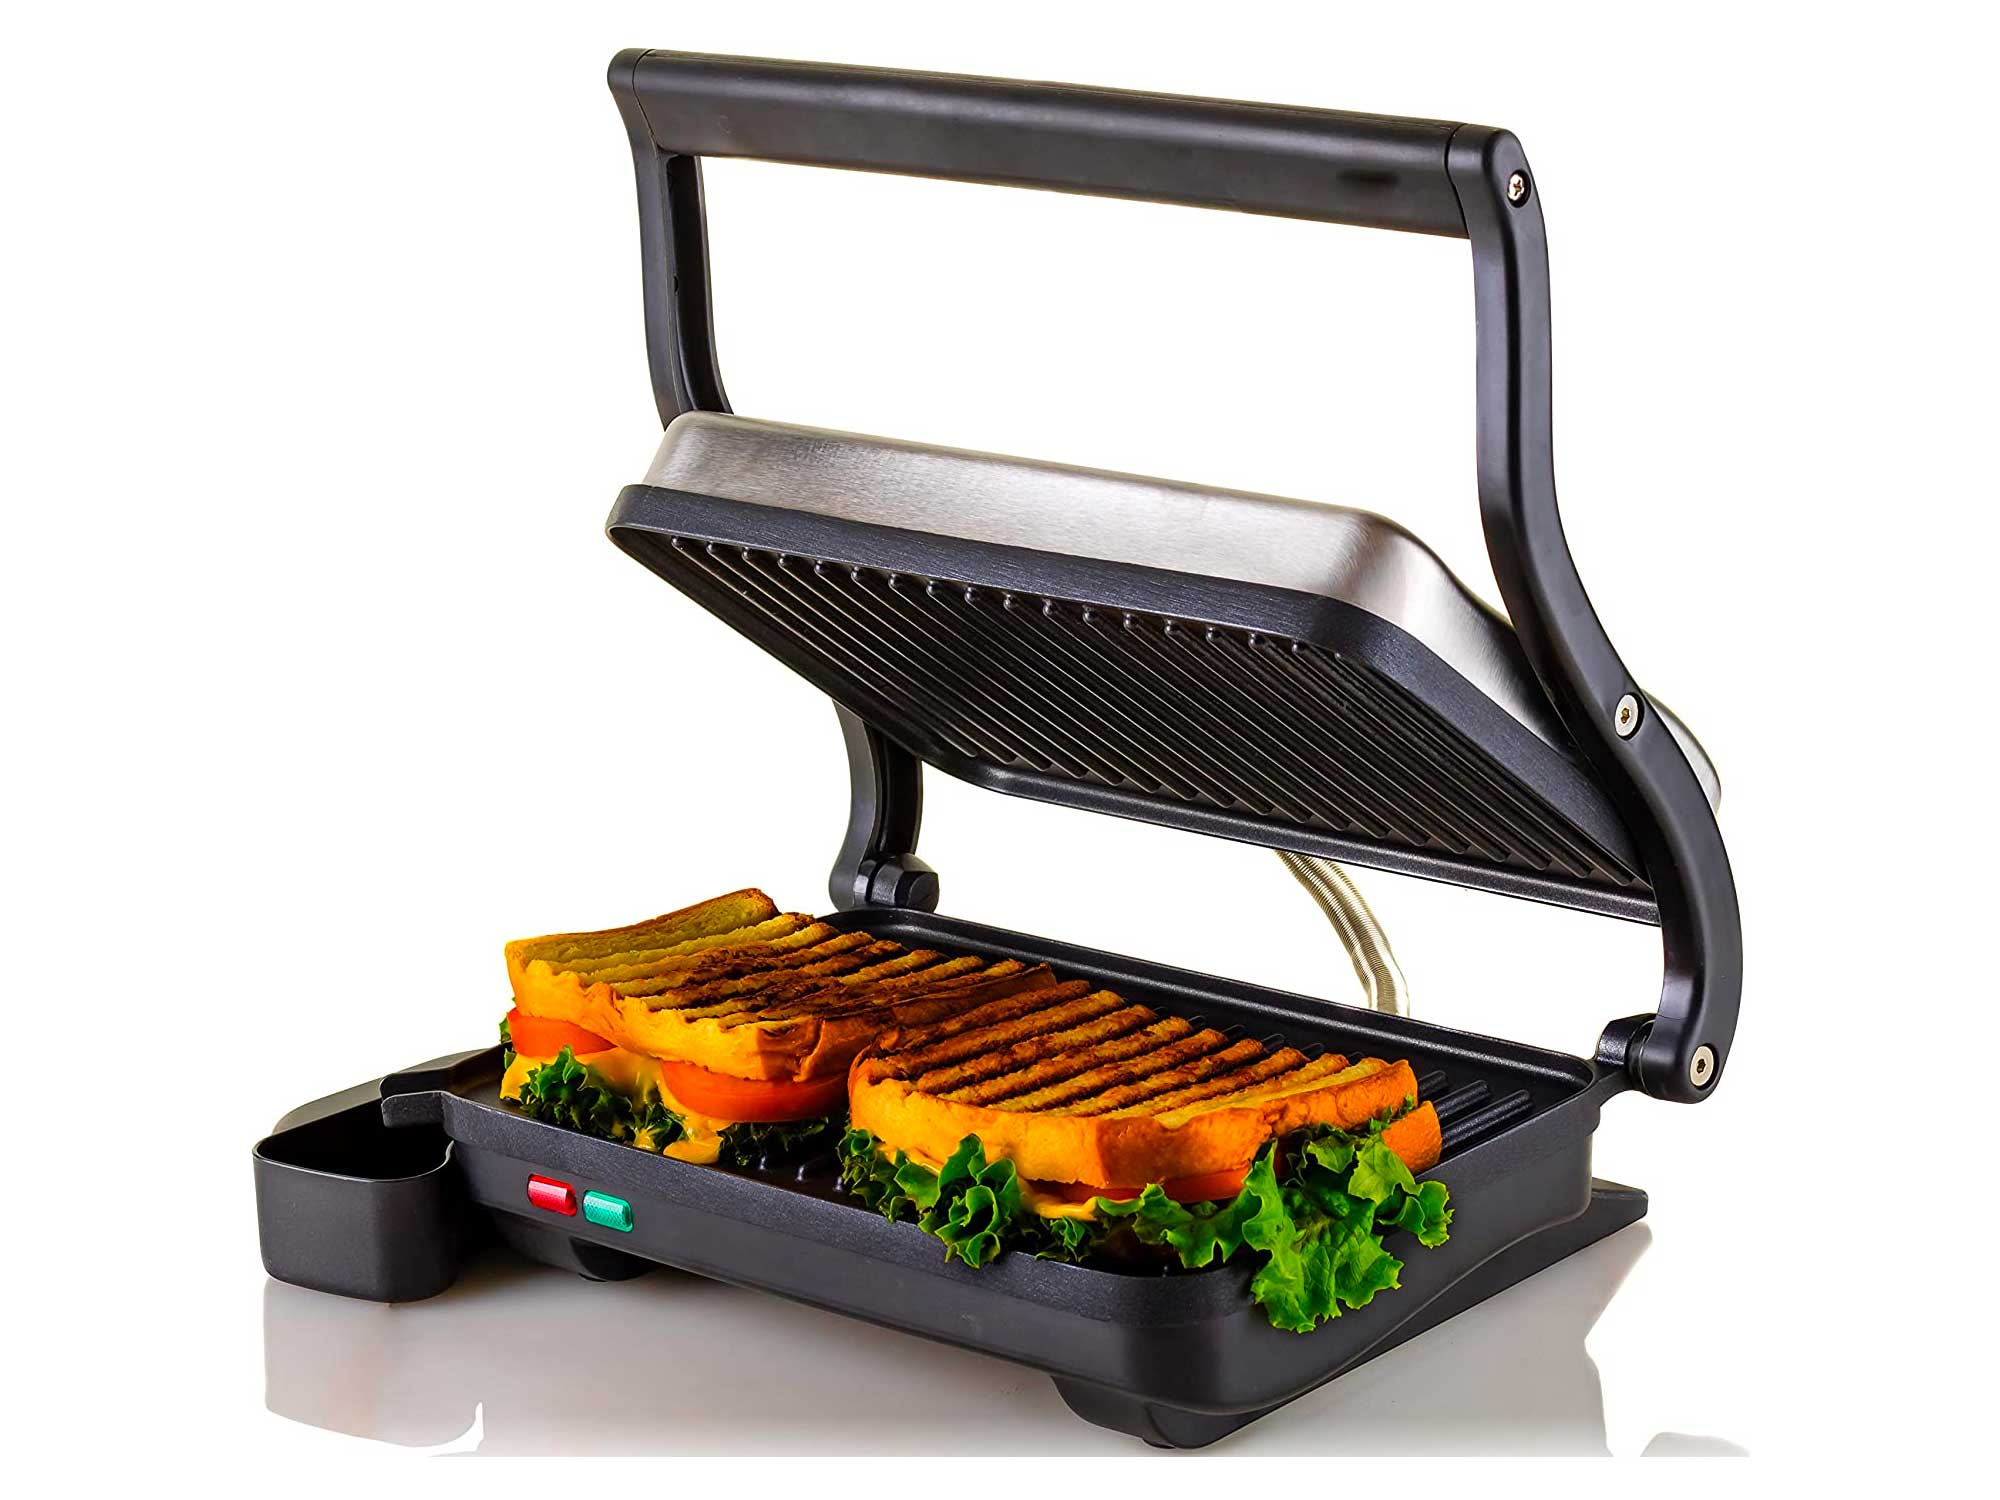 Ovente Electric Indoor Panini Press Grill with Non-Stick Double Flat Cooking Plate & Removable Drip Tray, Countertop Sandwich Maker Toaster Easy Storage & Clean Perfect for Breakfast, Silver